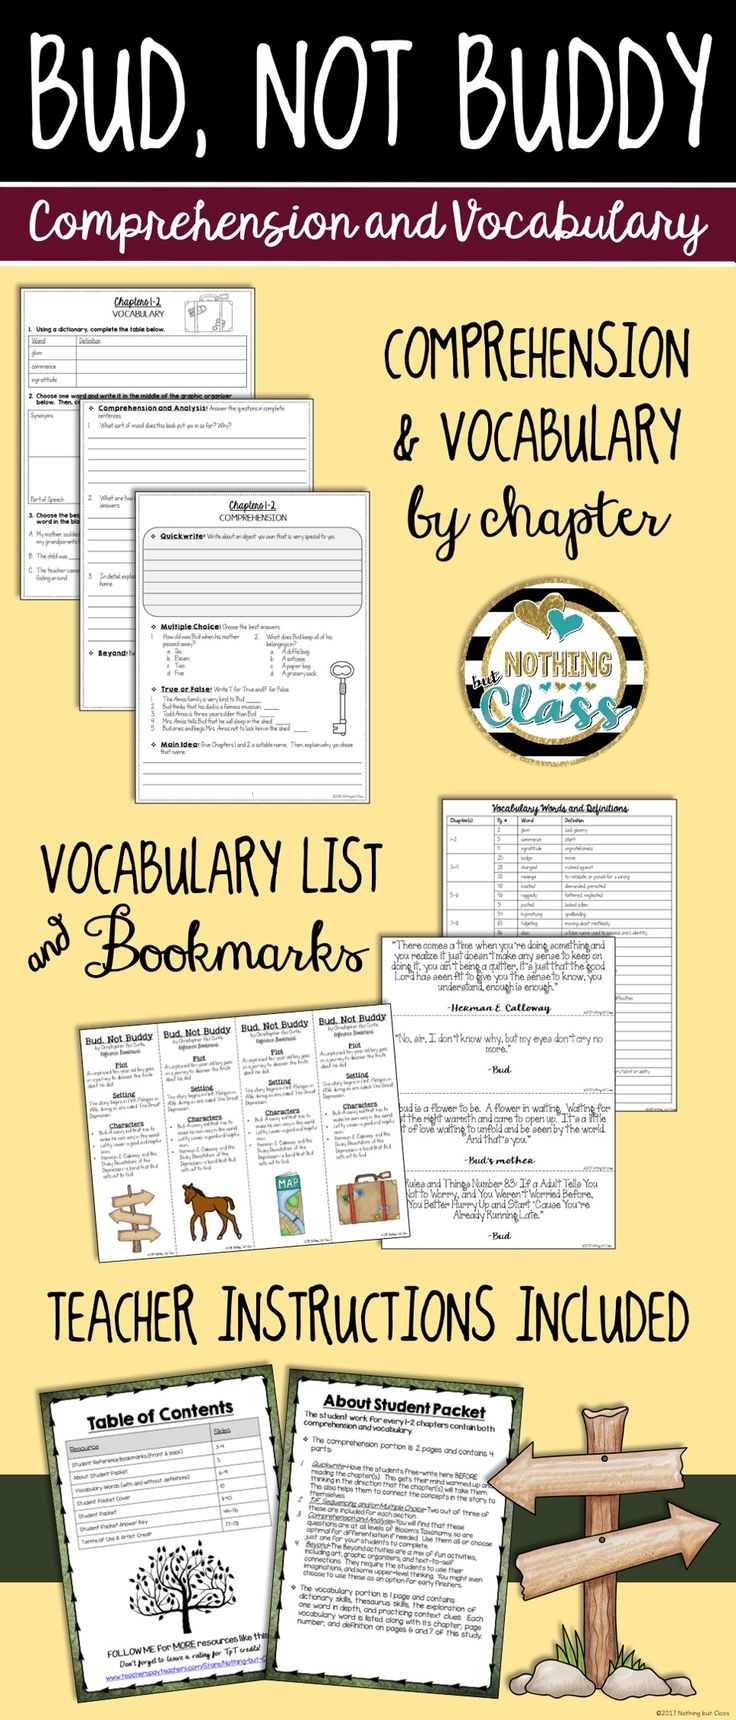 Worksheets Bud Not Buddy Worksheets 543226 best educational finds and teaching treasures images on bud not buddy comprehension vocabulary by chapter